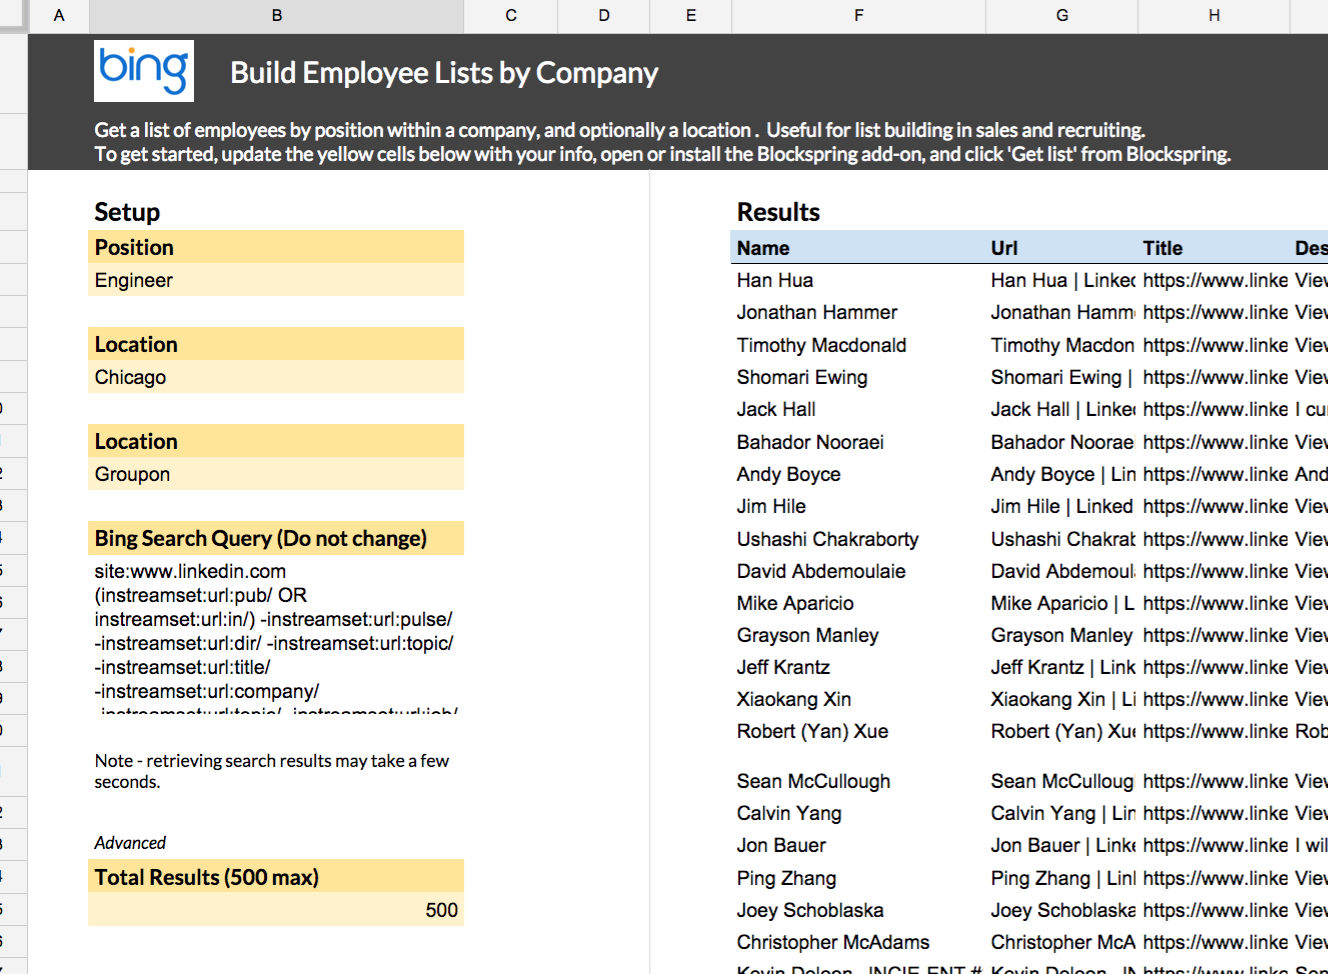 build employee lists by company spreadsheet template in google